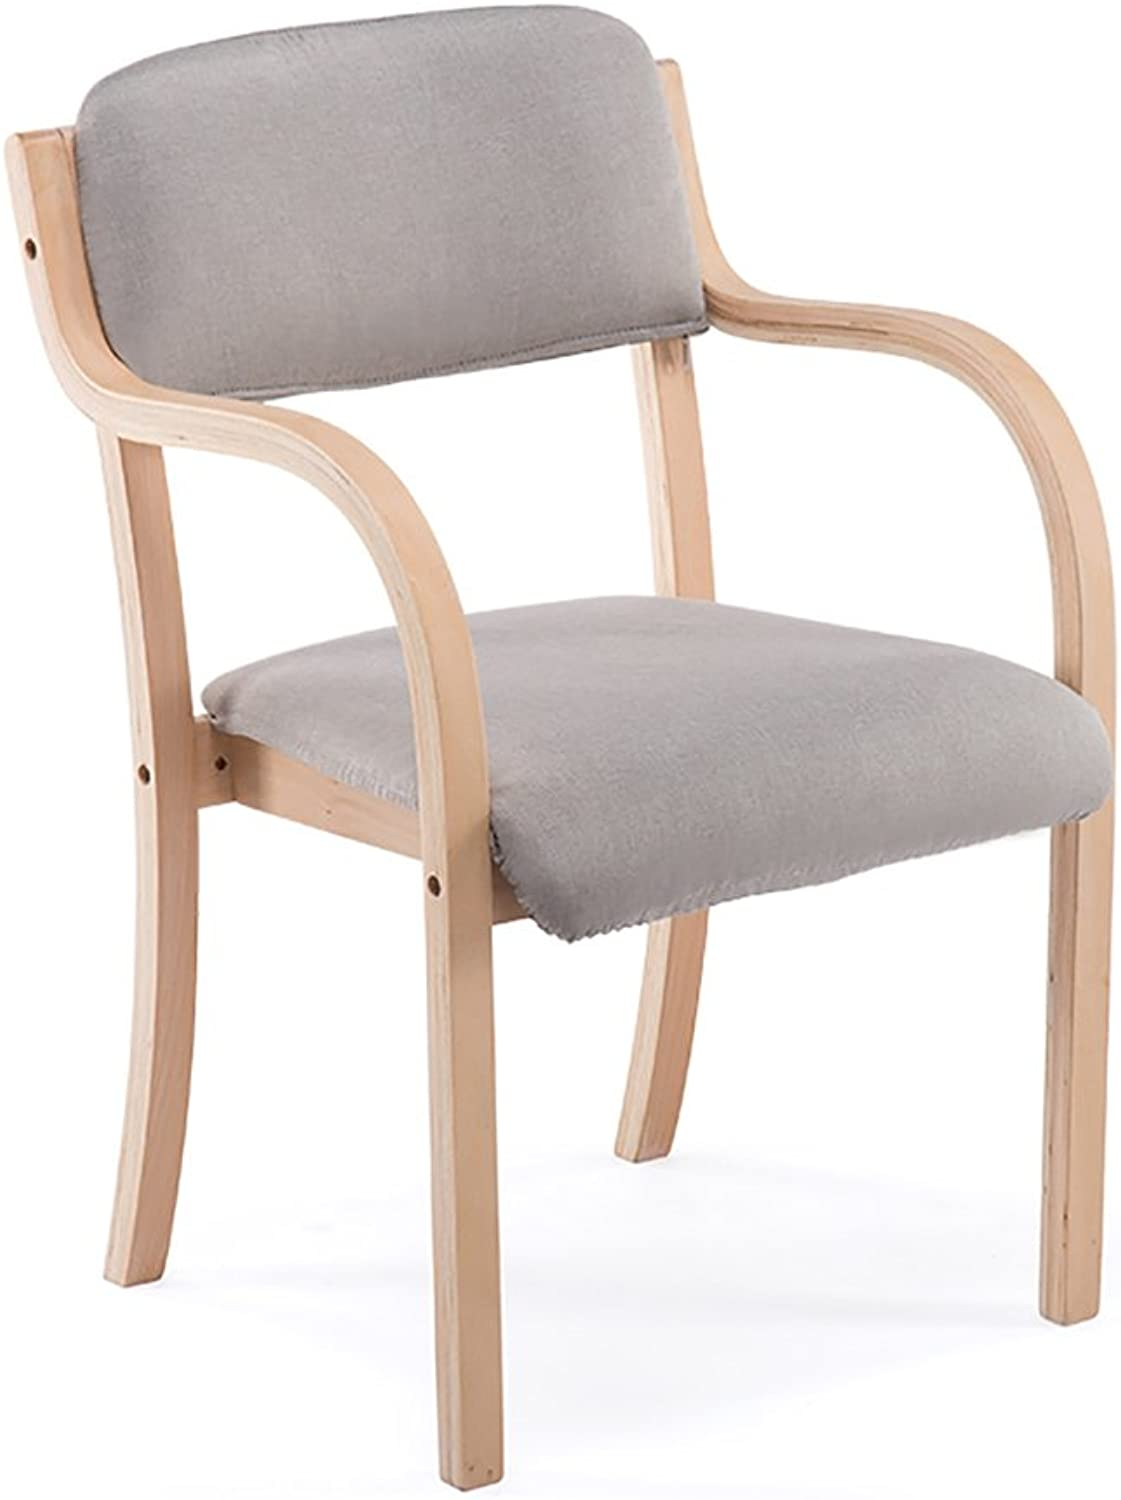 Xiao Mi Guo Ji- Chair-Simple Atmosphere, Sleek Minimalist Wooden Chair, Living Room, Bedroom, Dining Room, Creative Breathable Cotton Chair (Size 48X52X64 cm) Home Chair